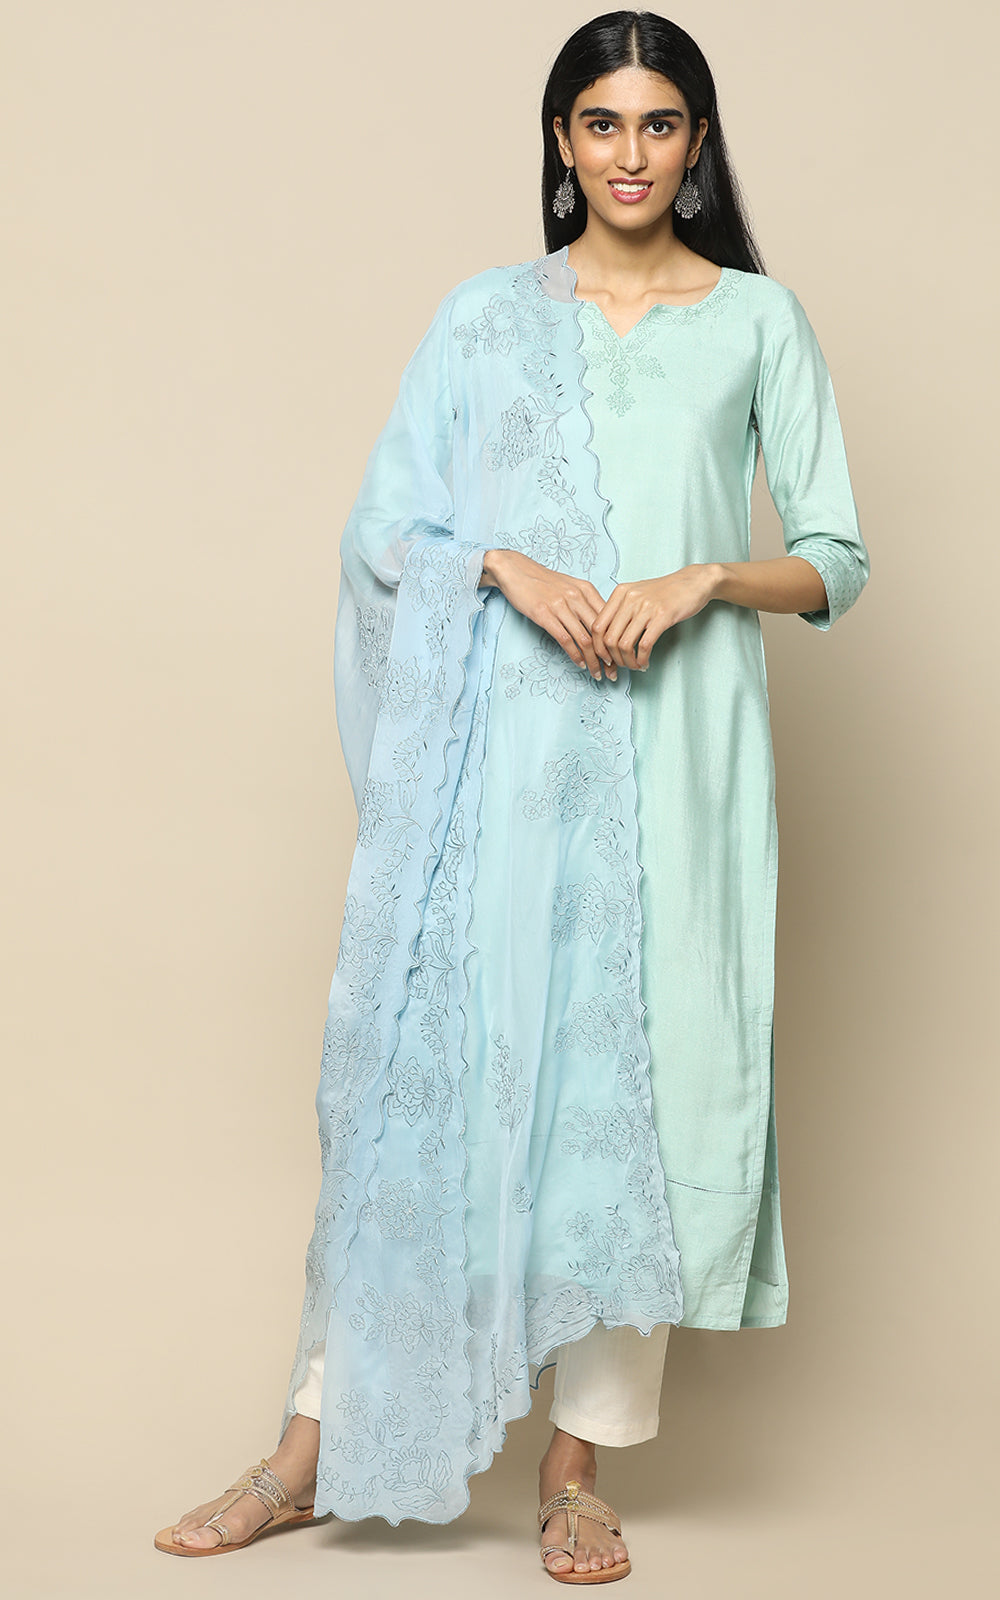 SEA GREEN BLUE STAPLE SILK KURTHA WITH BLOCK PRINT AND BLUE EMBROIDERED DUPATTA